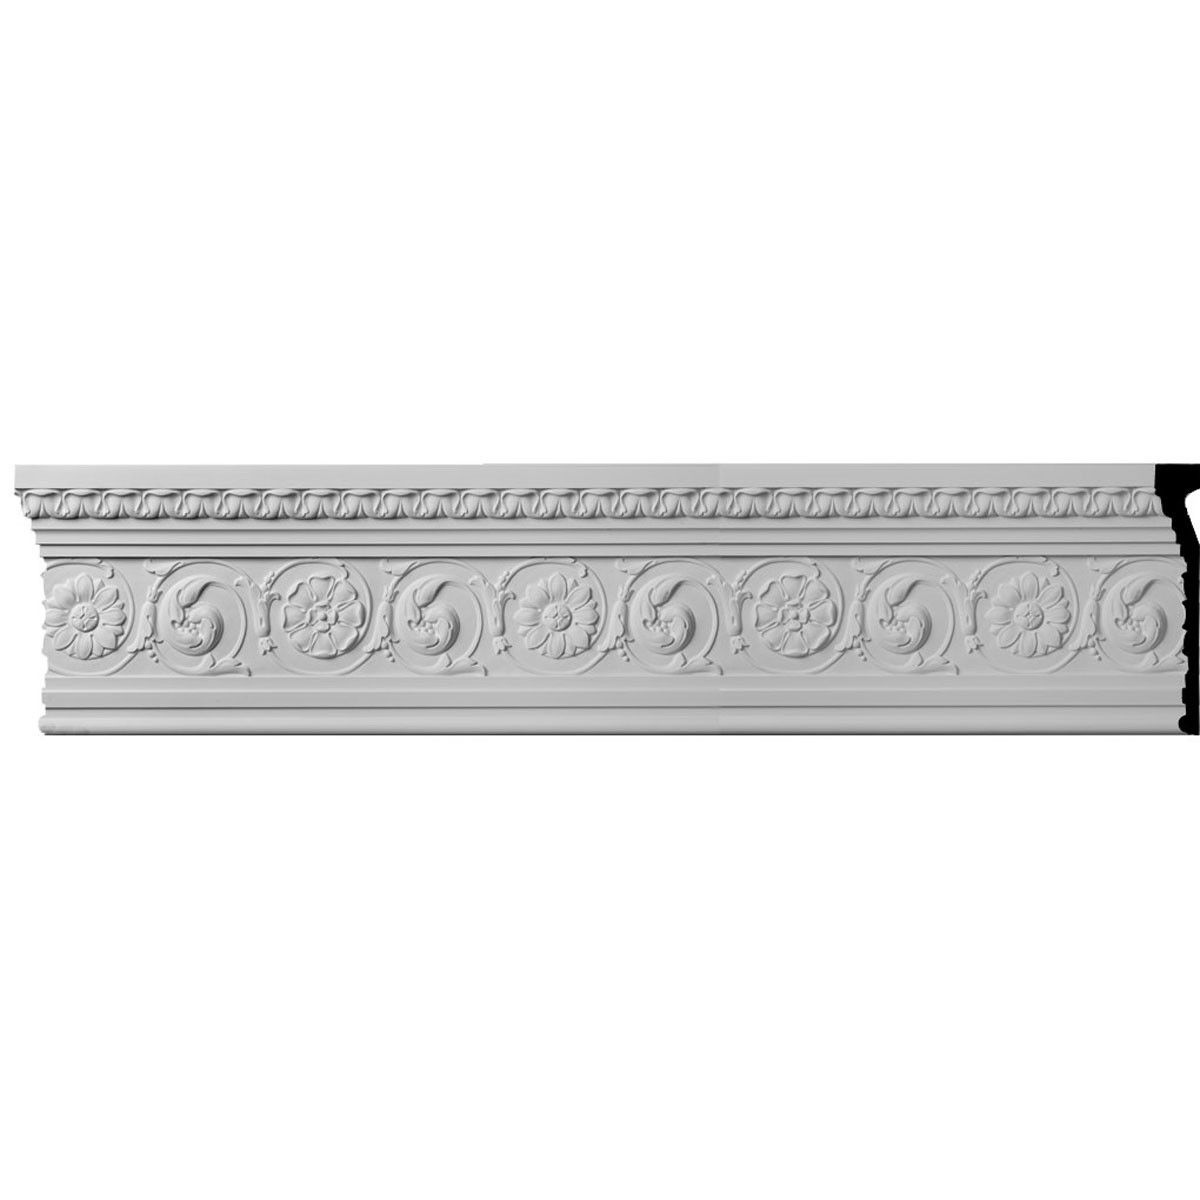 """EM-MLD11X02BE - 11 1/4""""H x 1 7/8""""P x 96""""L, (19 1/4"""" Repeat) Bedford with Flowers Moulding"""